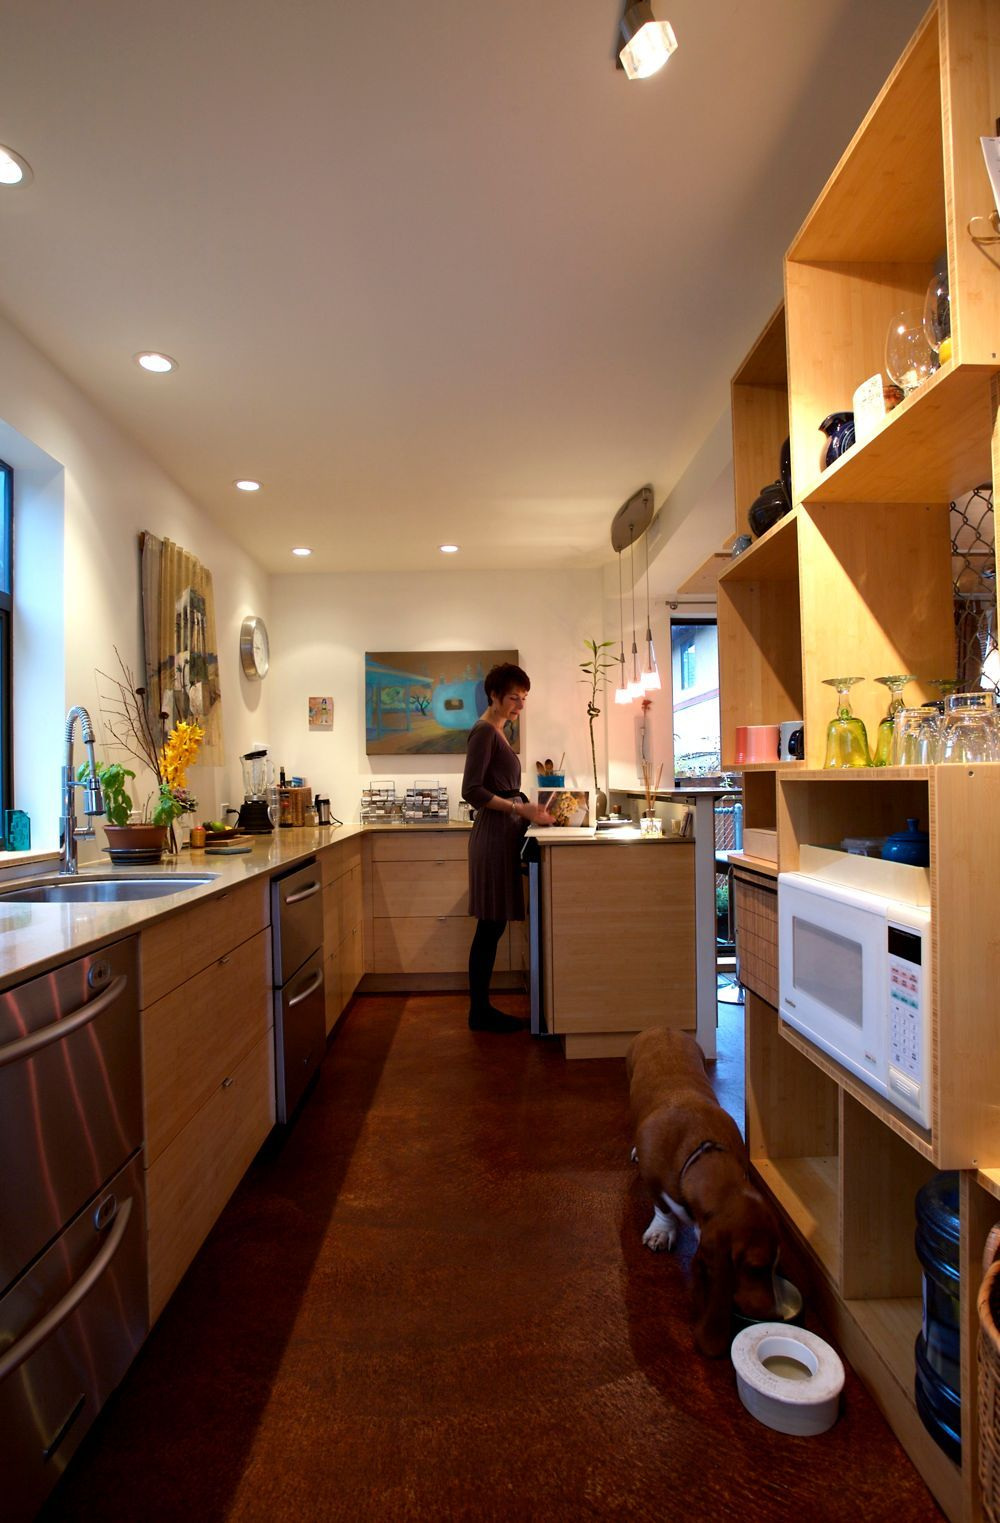 Best Kitchen Gallery: Container Home Kitchen Contain Your Enthusiasm Pinterest of Kitchen Shipping Container Homes on rachelxblog.com